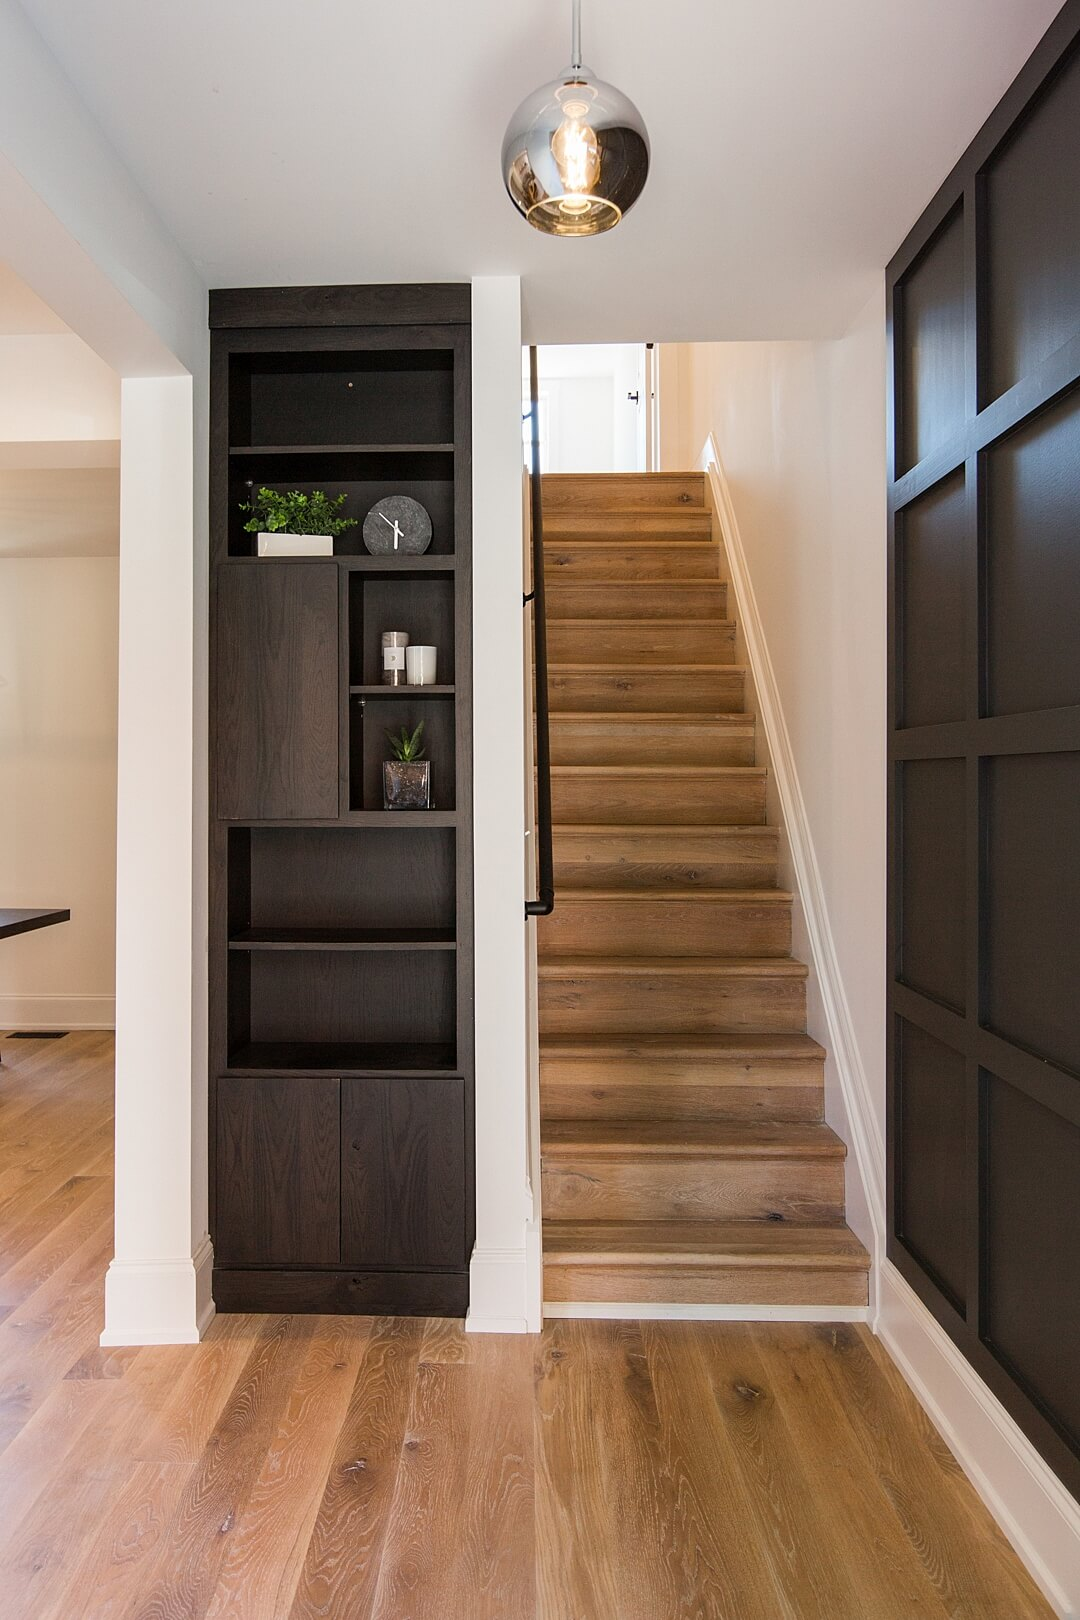 Oak stair treads leading upstairs in a house.